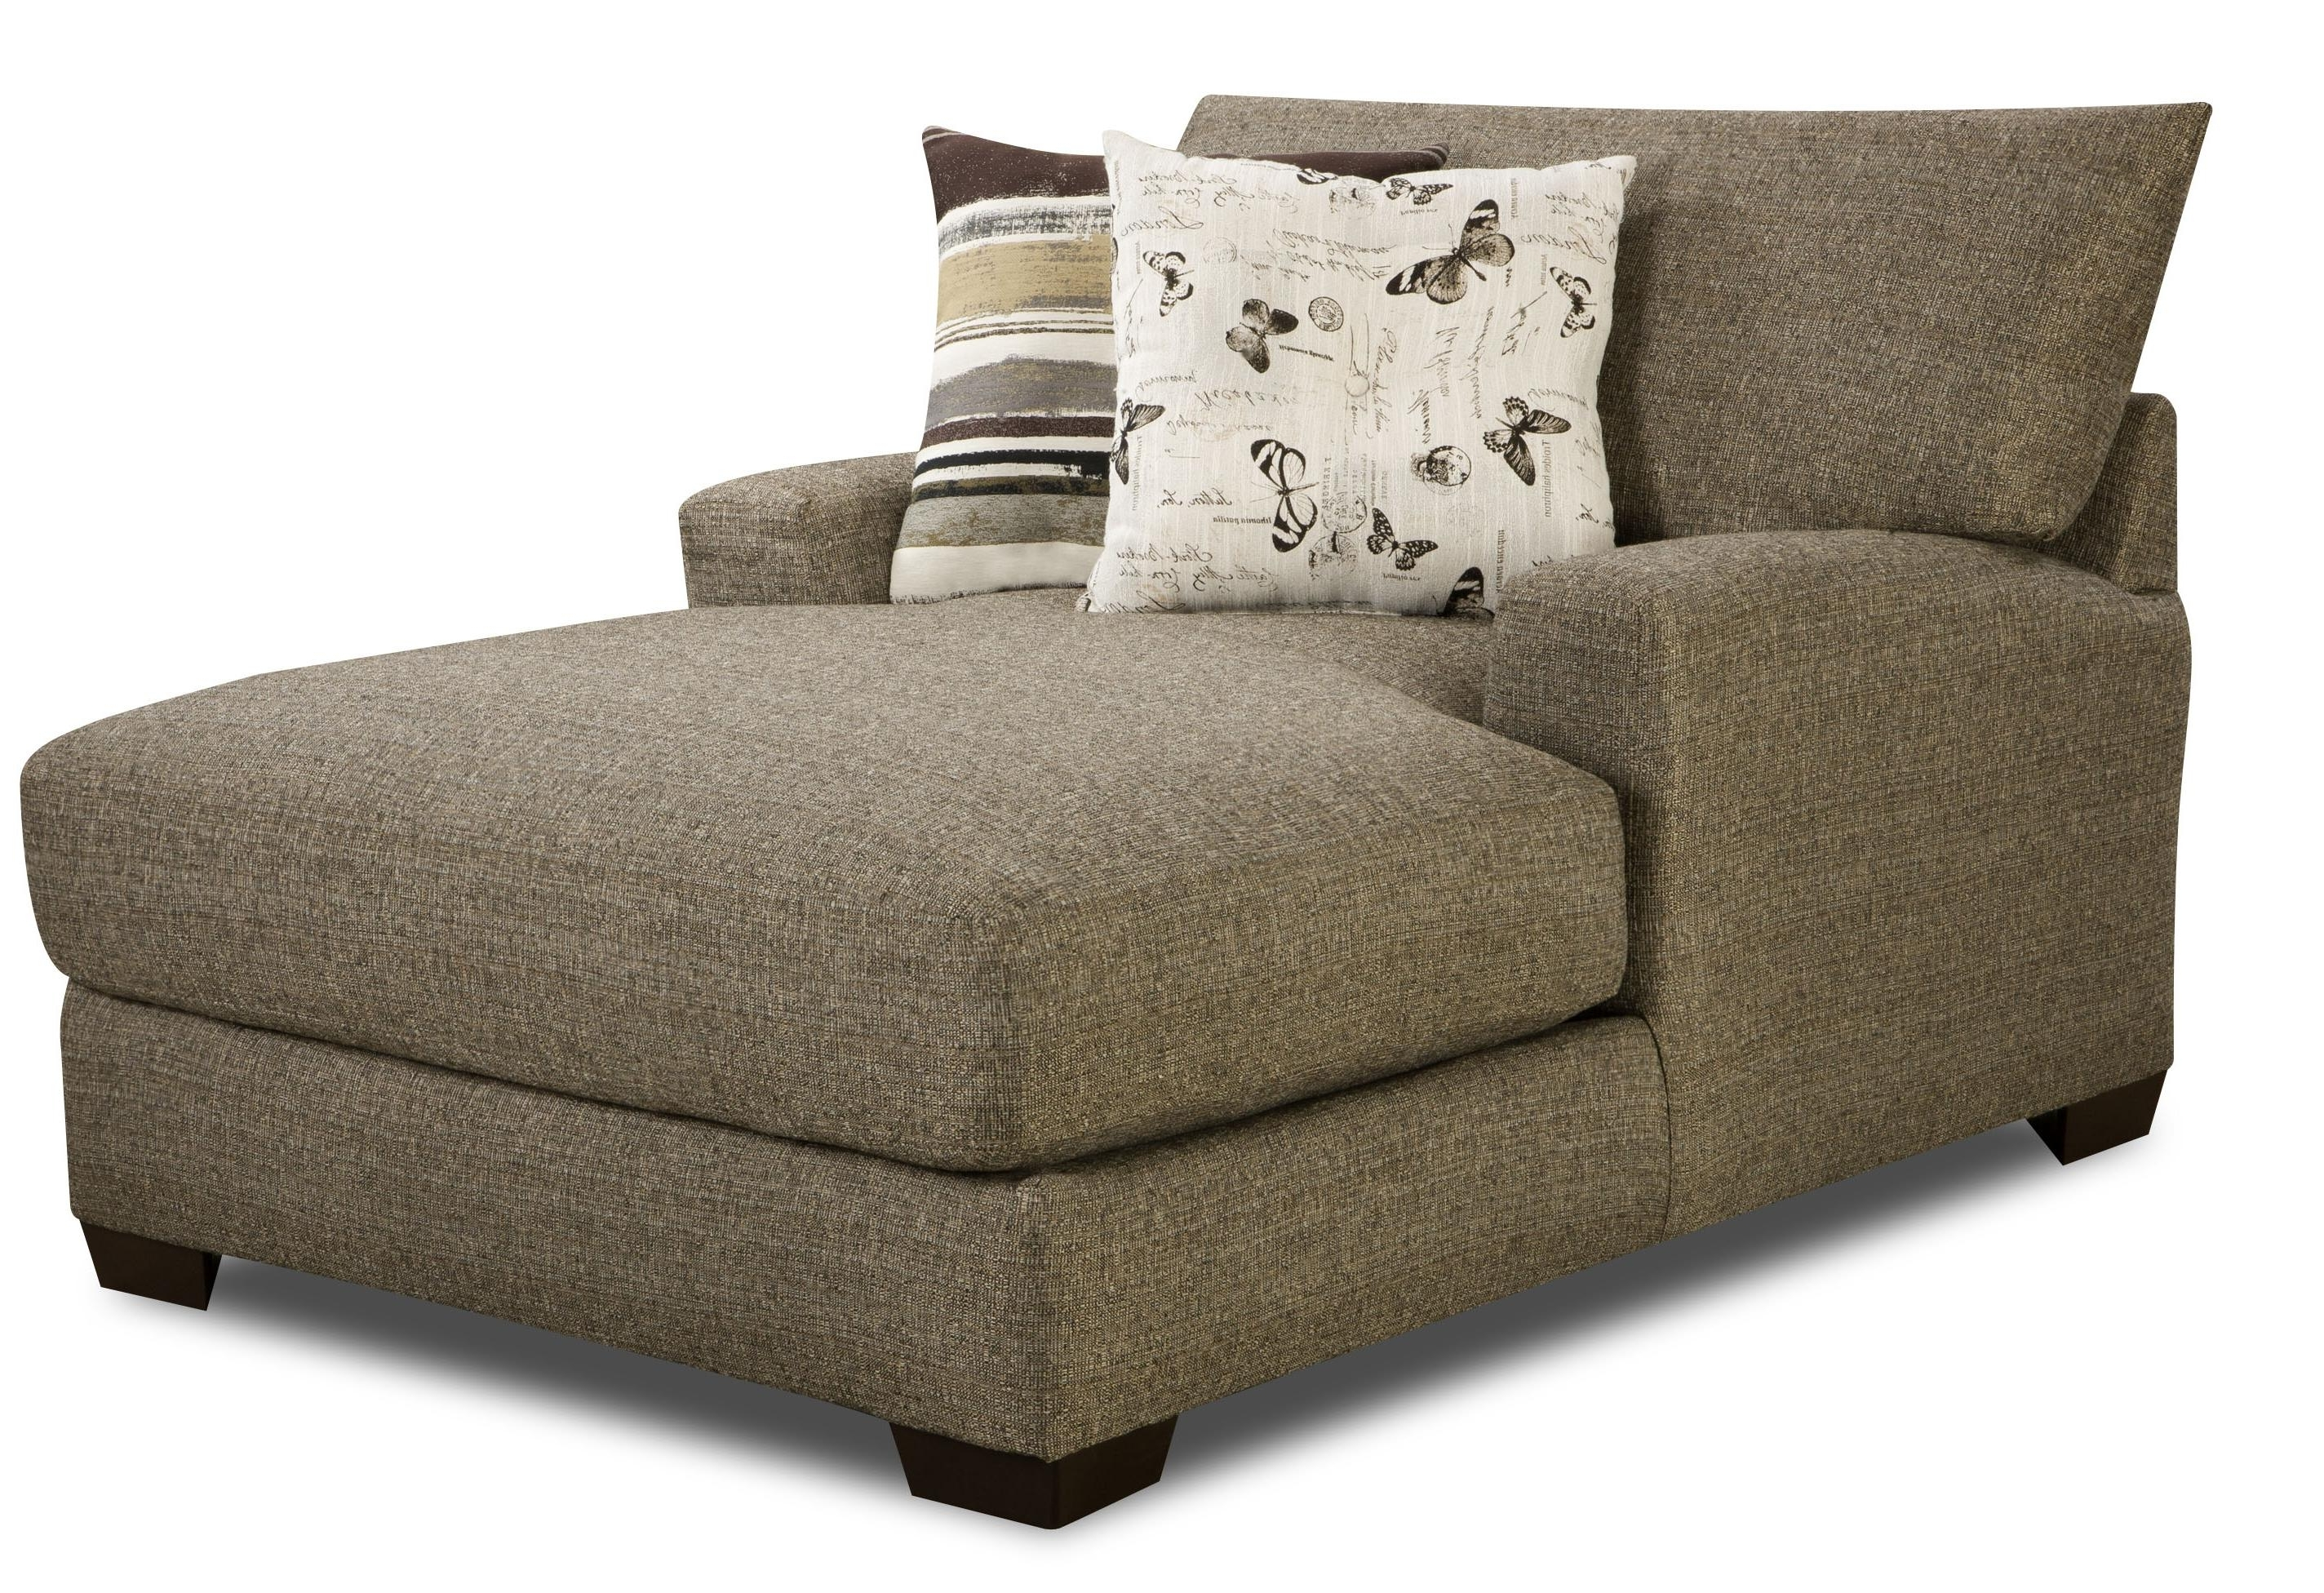 Current Chaise Lounges With Arms Intended For Fabric Chaise Lounge Chairs With Arms • Lounge Chairs Ideas (View 4 of 15)